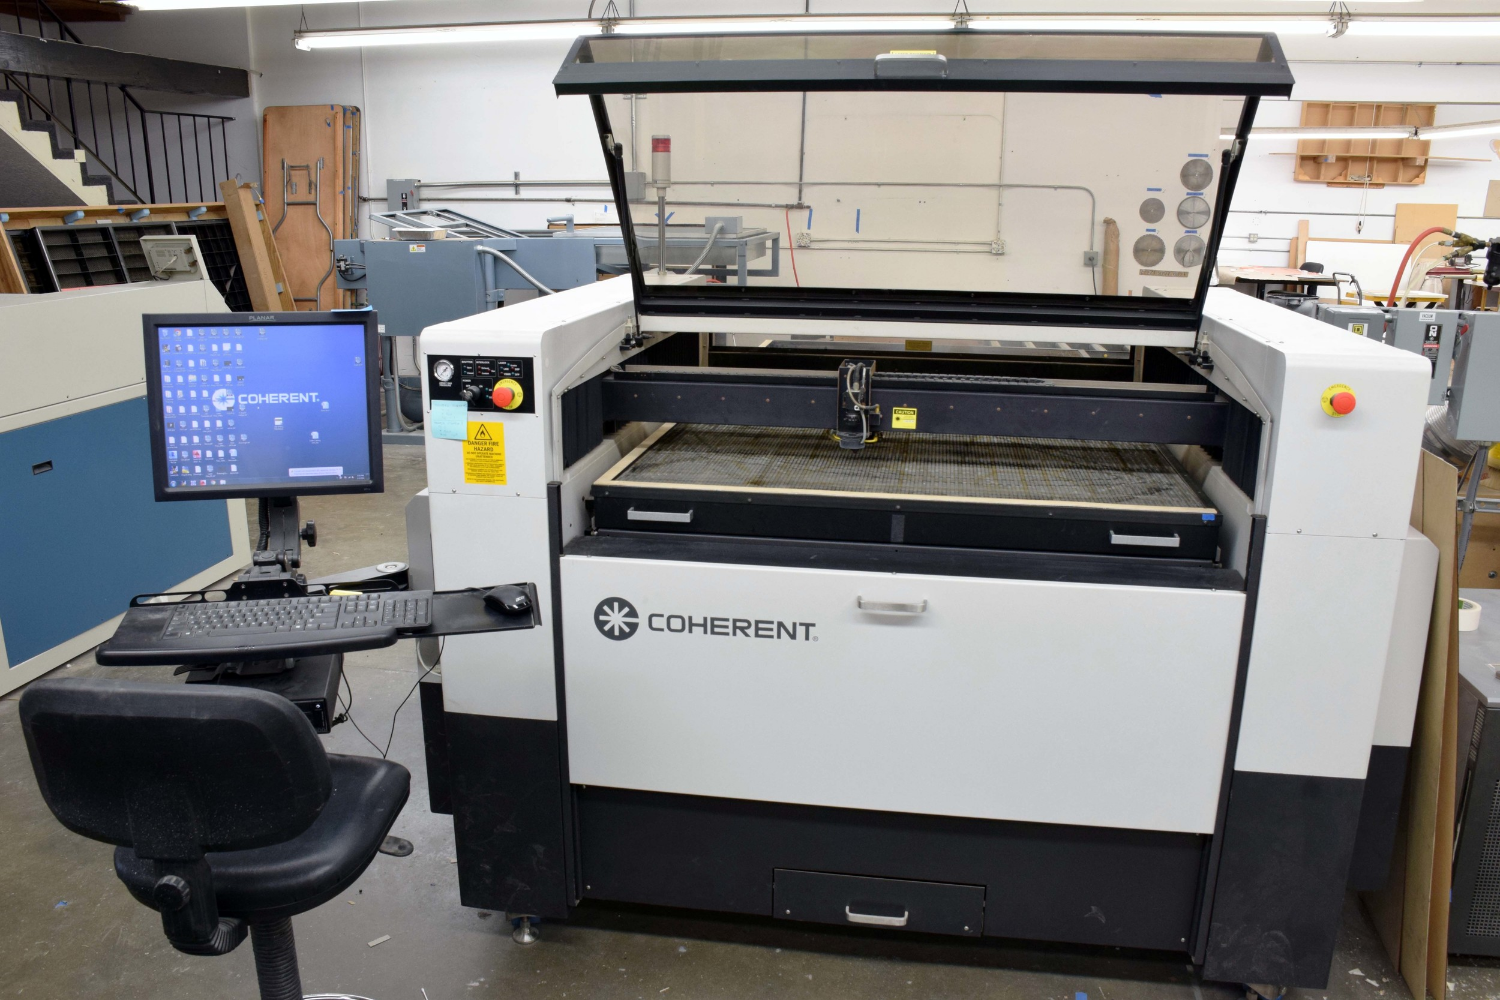 """The 250 watt laser, with a 48"""" x 96"""" bed size allows the mass production of parts, as well as larger parts at a high output rate. This enables fast turnaround times!"""